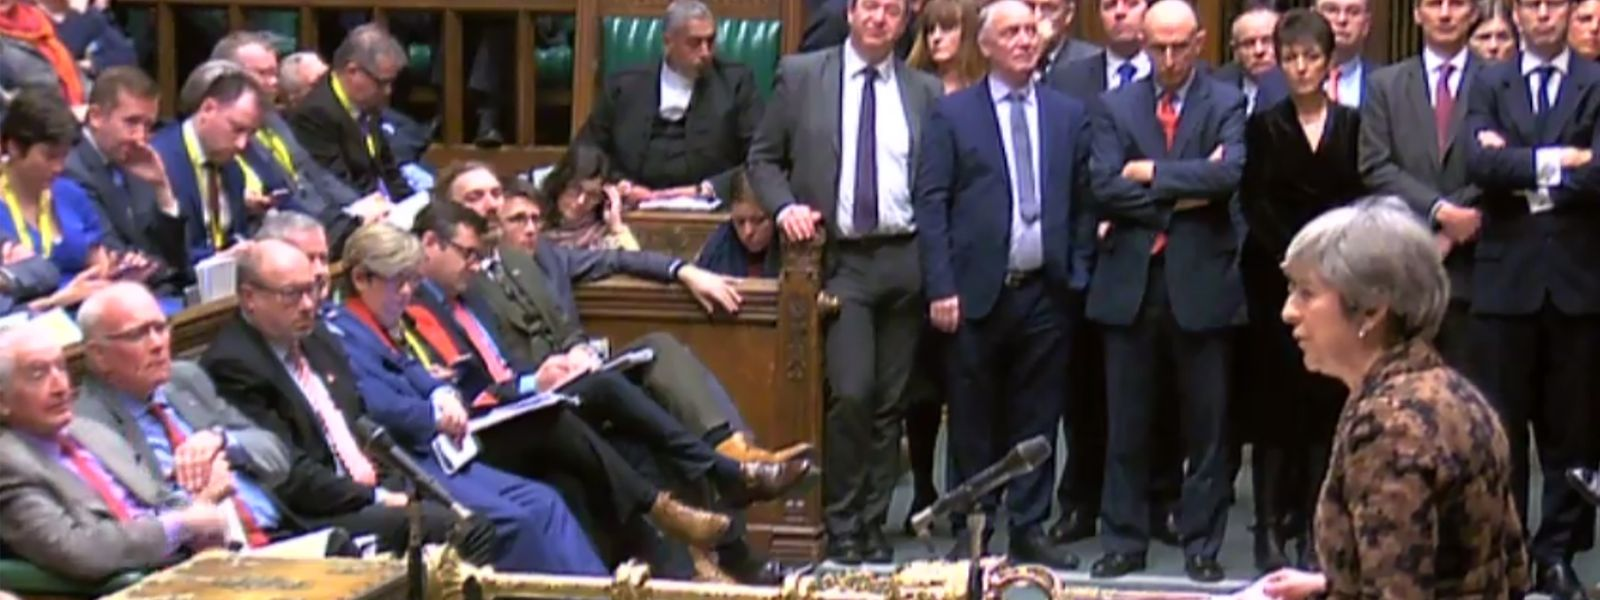 "A video grab from footage broadcast by the UK Parliament's Parliamentary Recording Unit (PRU) shows Britain's Prime Minister Theresa May (R) making a statement to the House of Commons in London on January 21, 2019, on changes to her Brexit withdrawal agreement. - British Prime Minister Theresa May unveils her Brexit ""Plan B"" to parliament on Monday after MPs shredded her EU divorce deal, deepening the political gridlock 10 weeks from departure day. (Photo by HO / various sources / AFP) / RESTRICTED TO EDITORIAL USE - MANDATORY CREDIT "" AFP PHOTO / PRU "" - NO USE FOR ENTERTAINMENT, SATIRICAL, MARKETING OR ADVERTISING CAMPAIGNS"